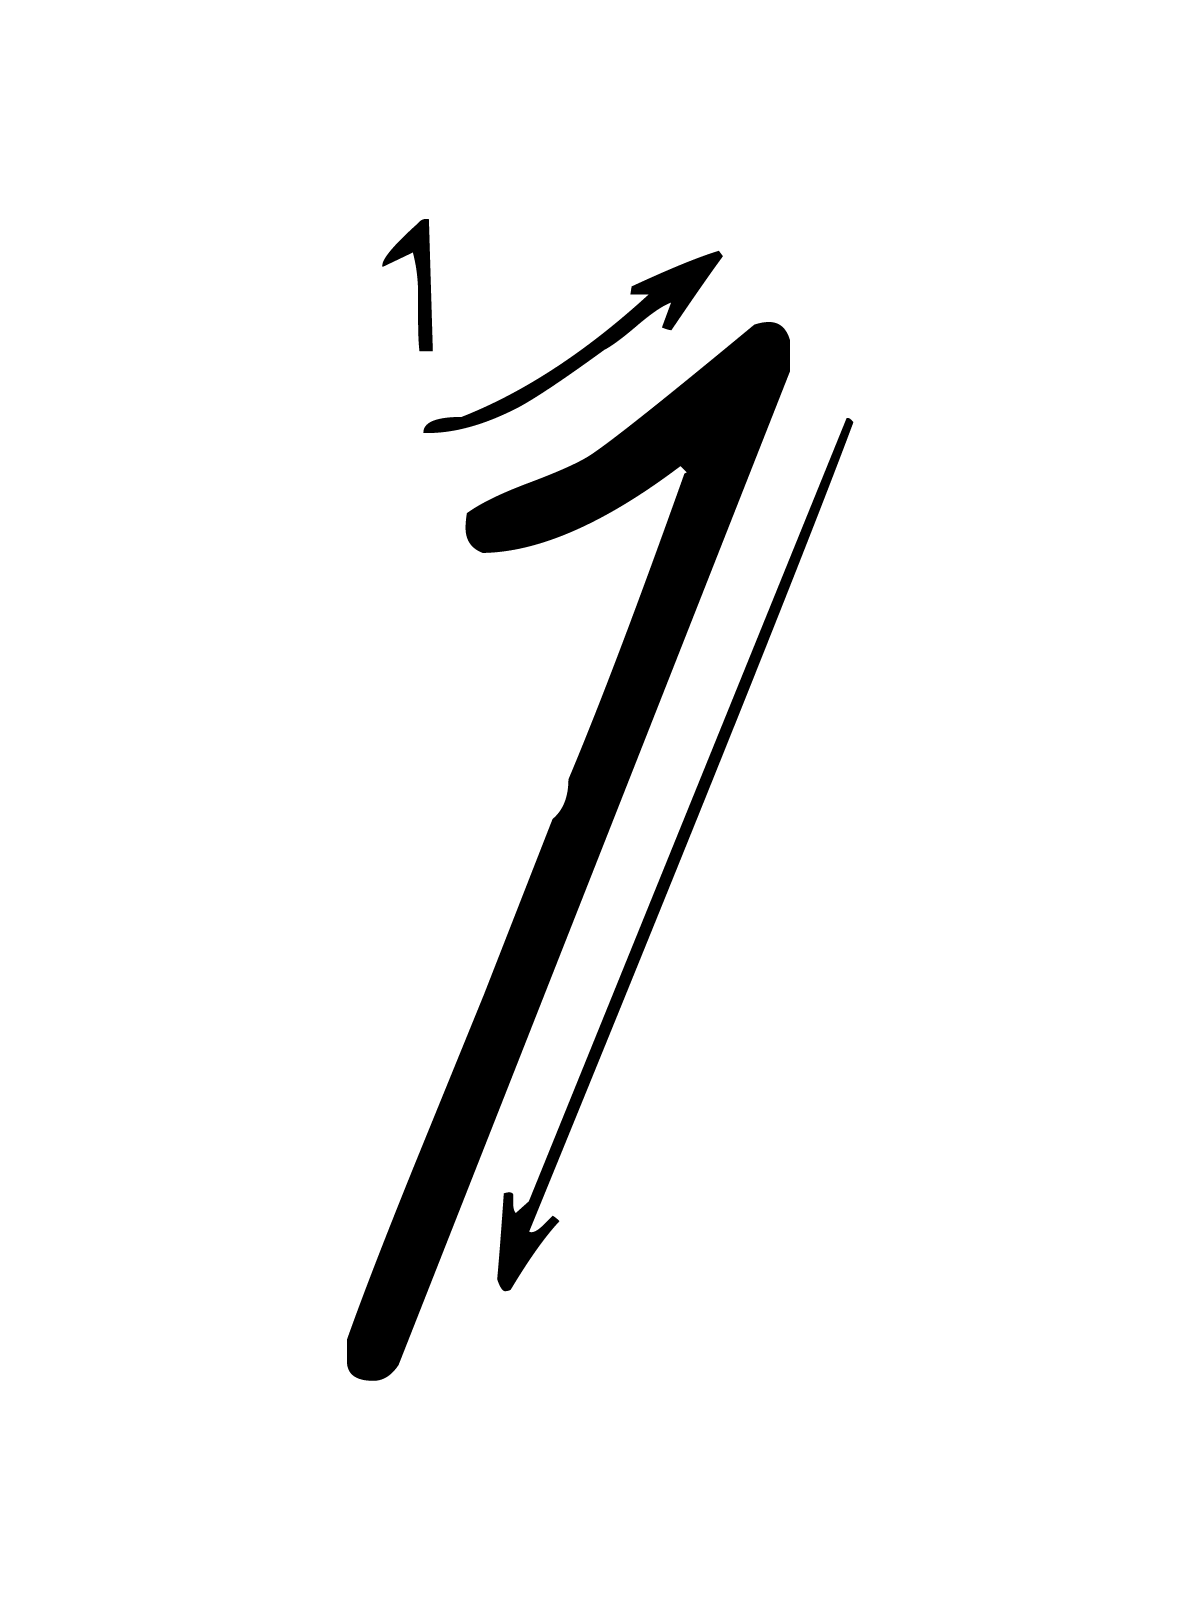 Letters And Numbers - Number 1 (One) With Indications